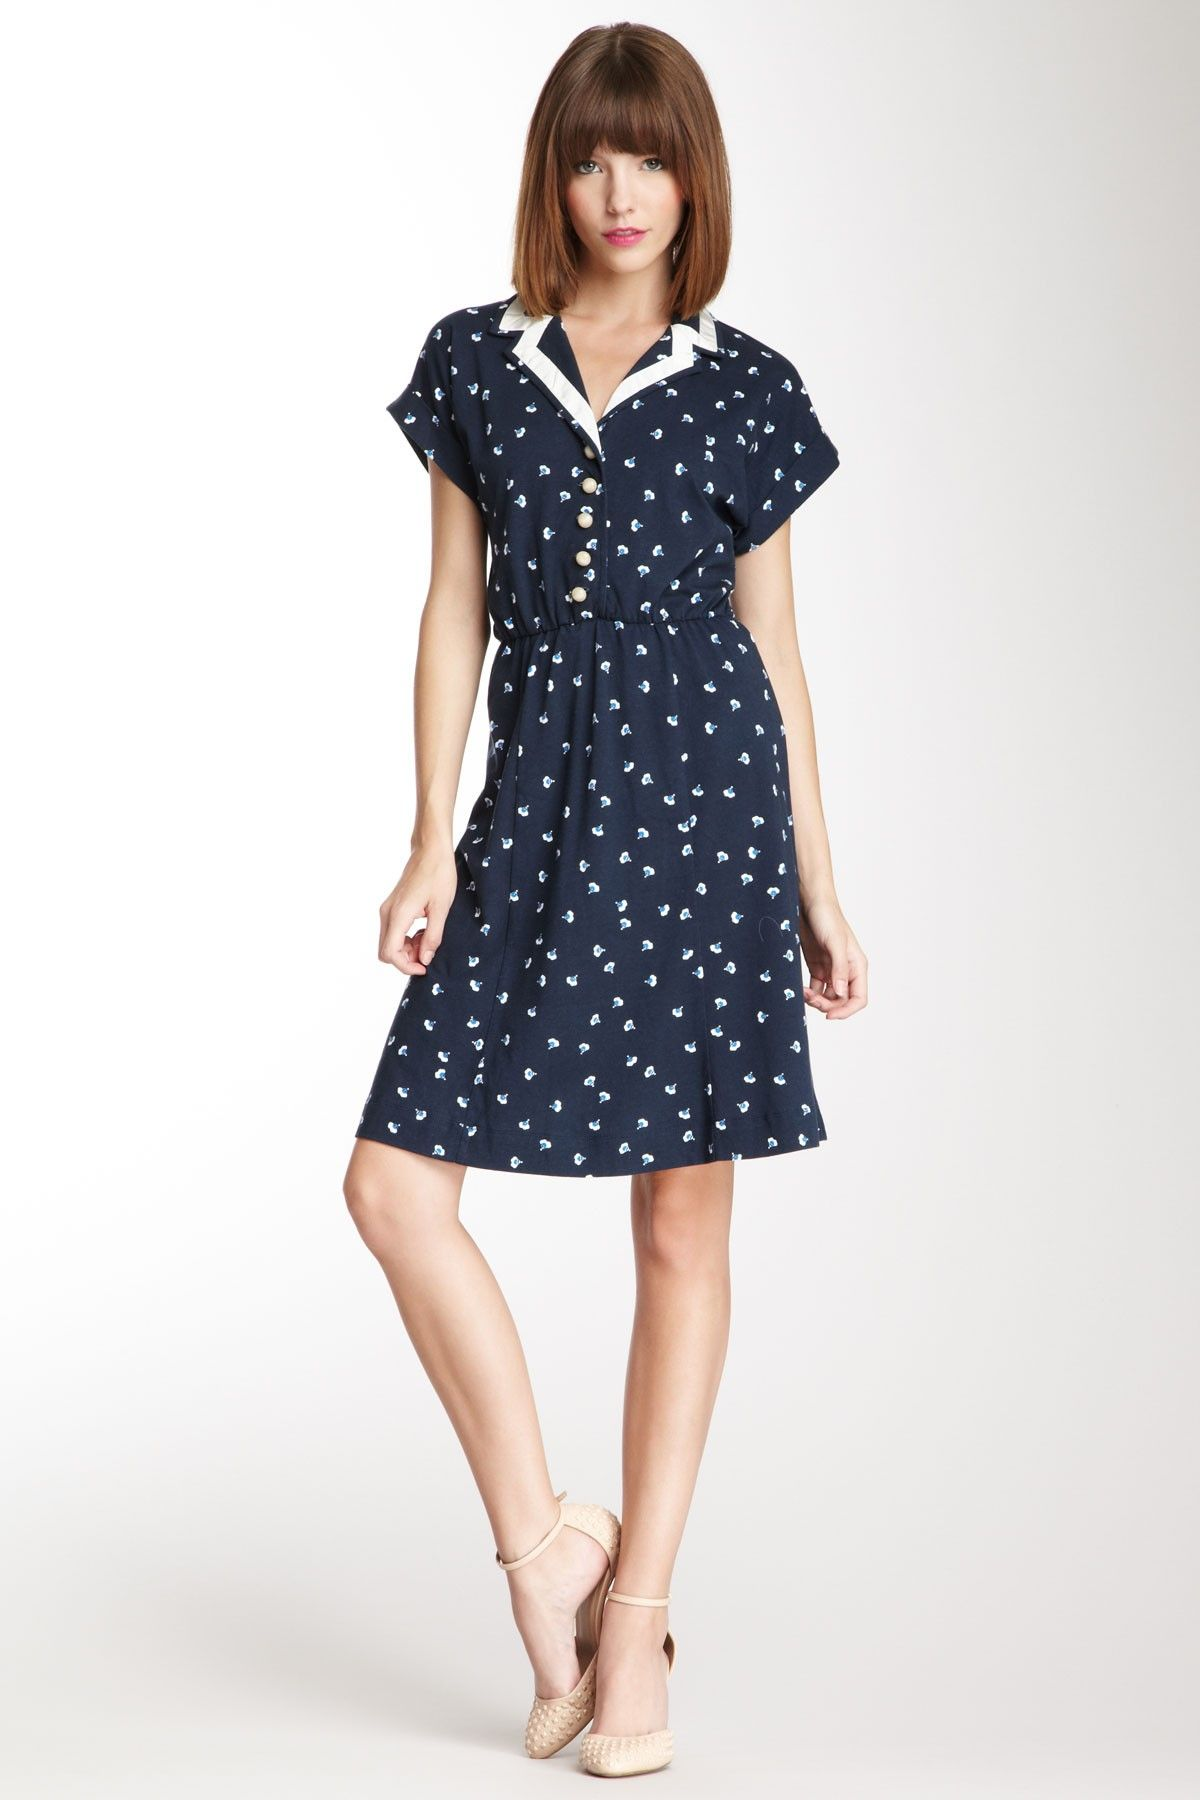 Orla Kiely Summer Printed Tea Dress. Cute!   ...MKL...